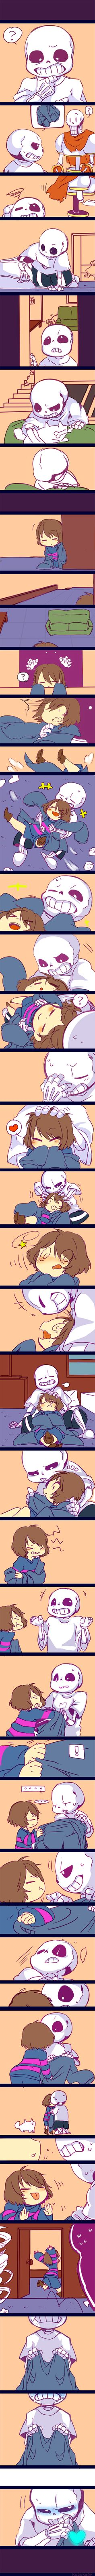 Undertale by kuzukago.deviantart.com on @DeviantArt<<< Frisk, you little flirt!